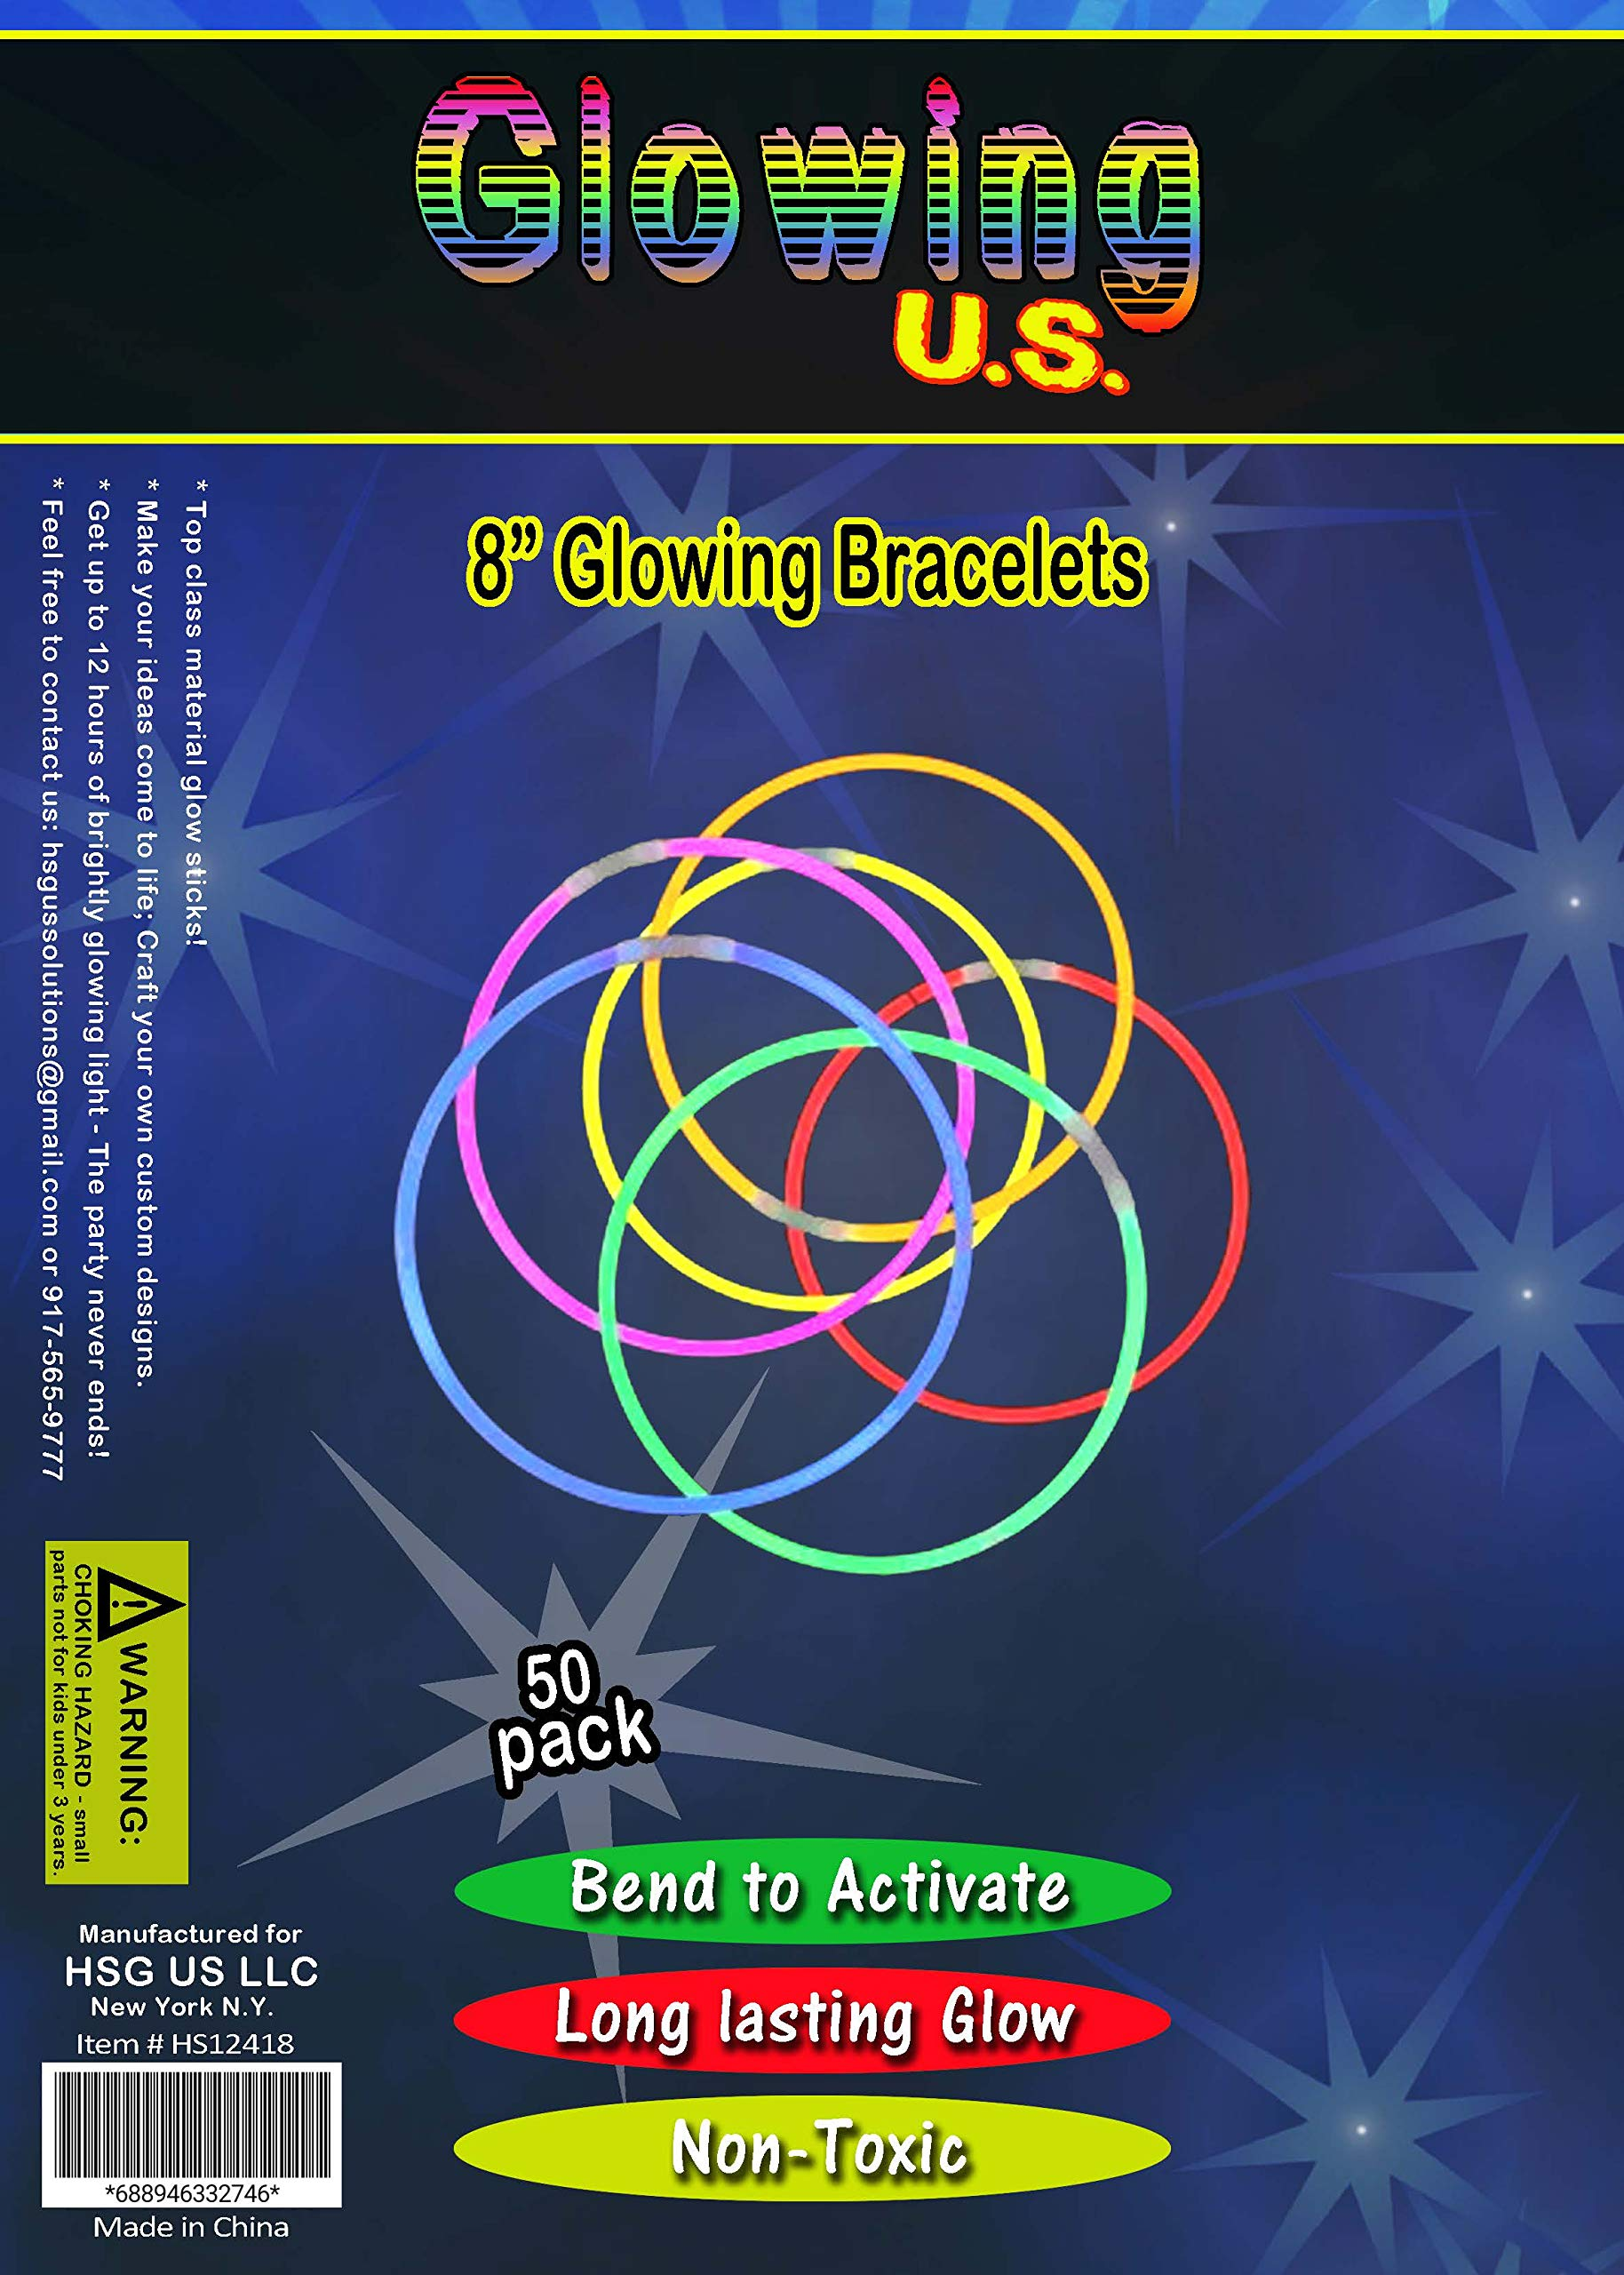 150 Ultra Bright Glow Sticks - Total 300 Pcs - 8'' Necklaces And Bracelets Glow Stick With Connectors - Bulk Party Pack Ultra Bright Glowsticks - 10 Hour Duration - Mixed Colors In 3 Tubes by Glowing U.S. inc (Image #5)